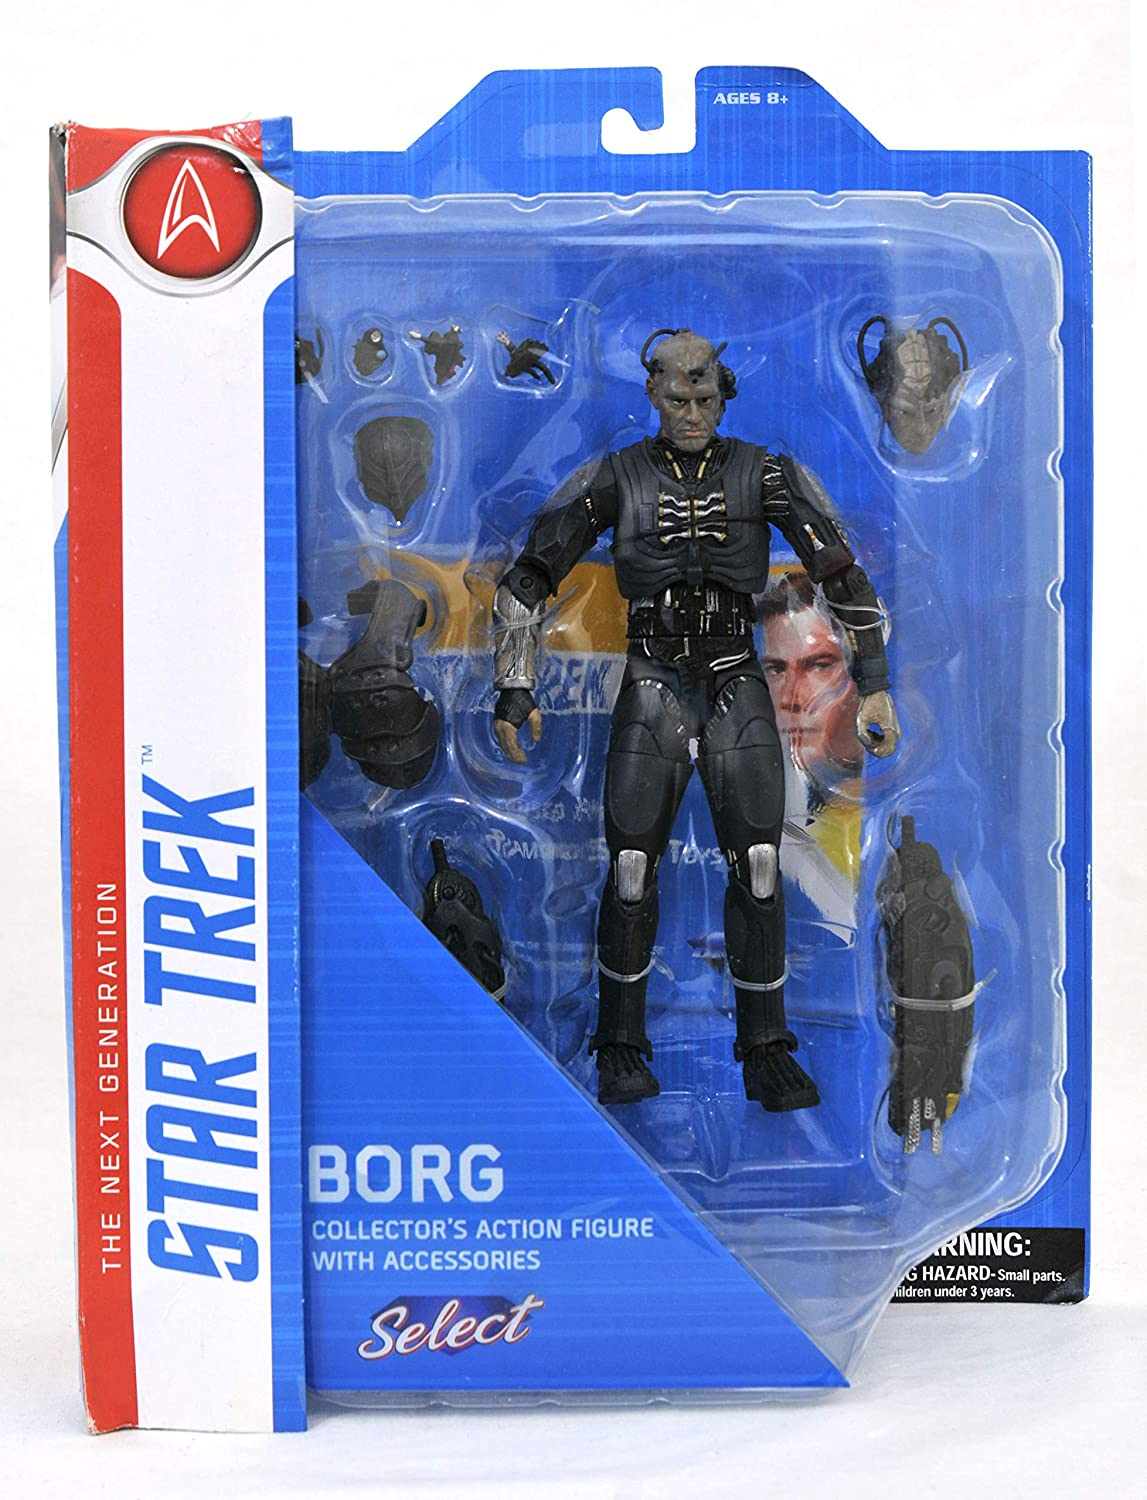 Diamond Star Trek Borg Figure